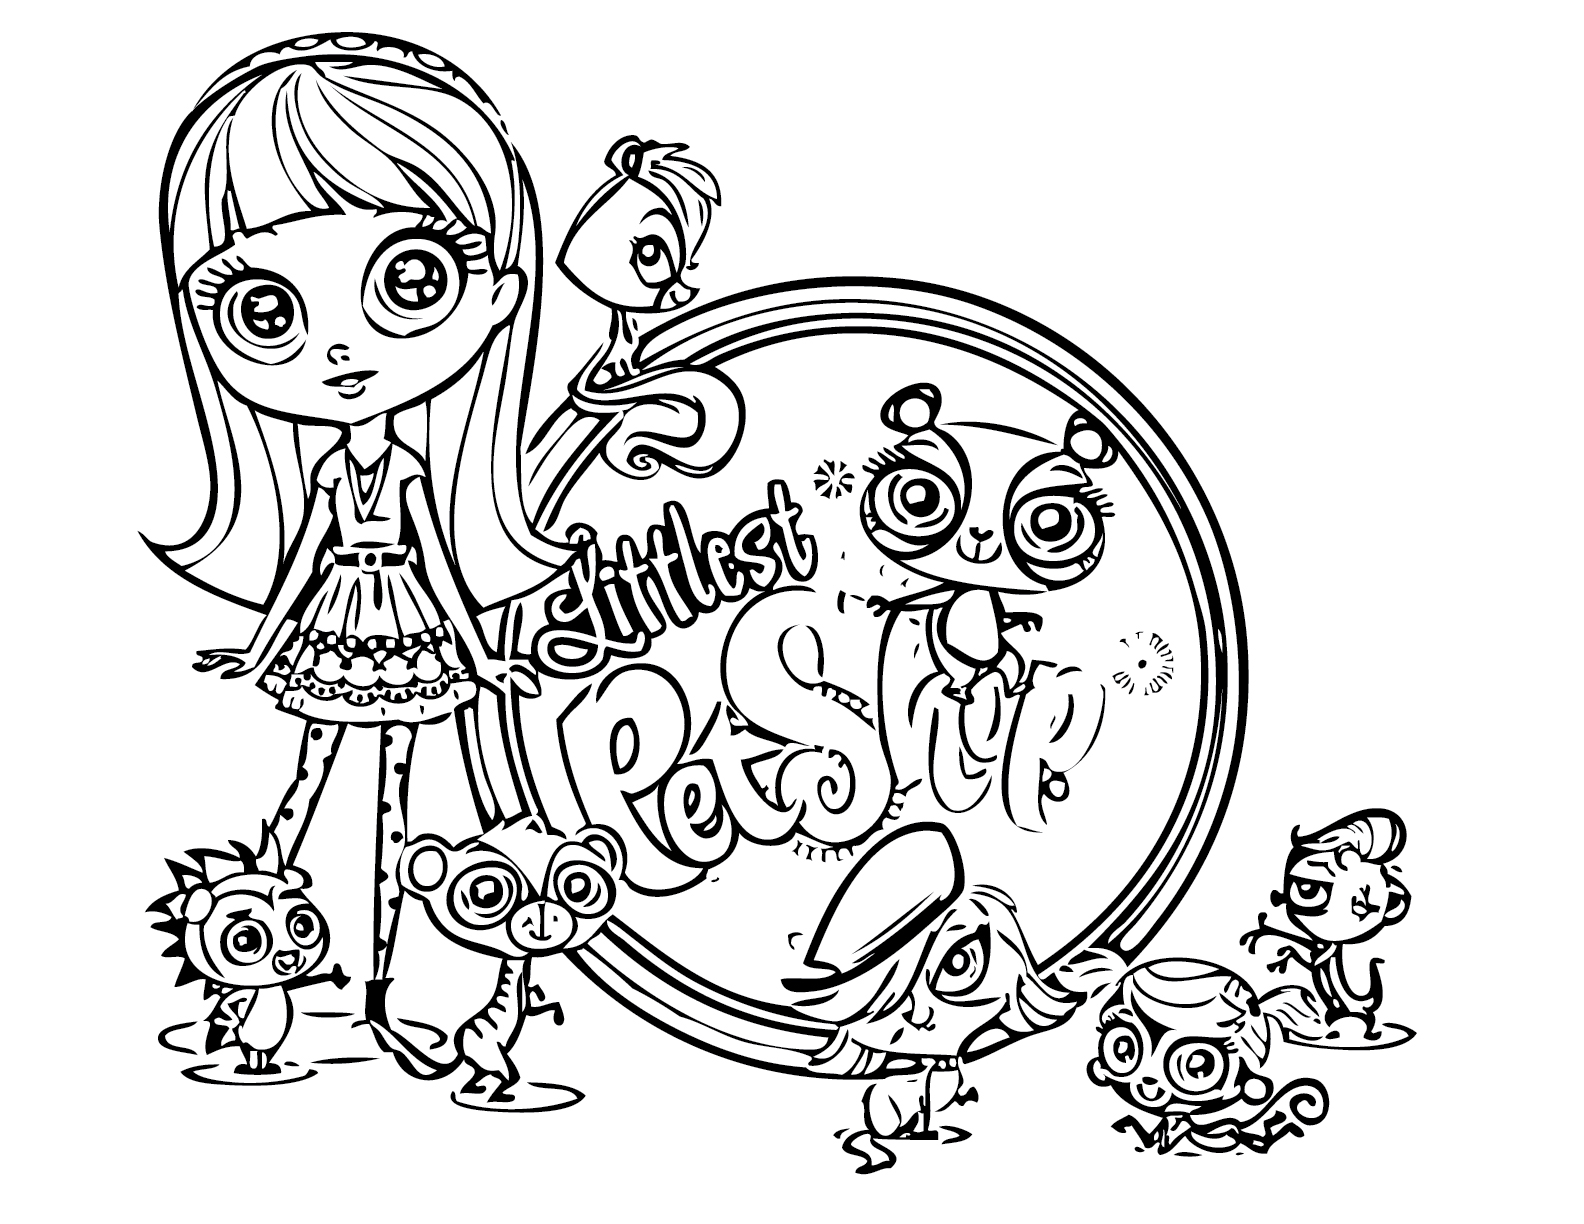 6 Images of Littlest Pet Shop Coloring Pages Printable